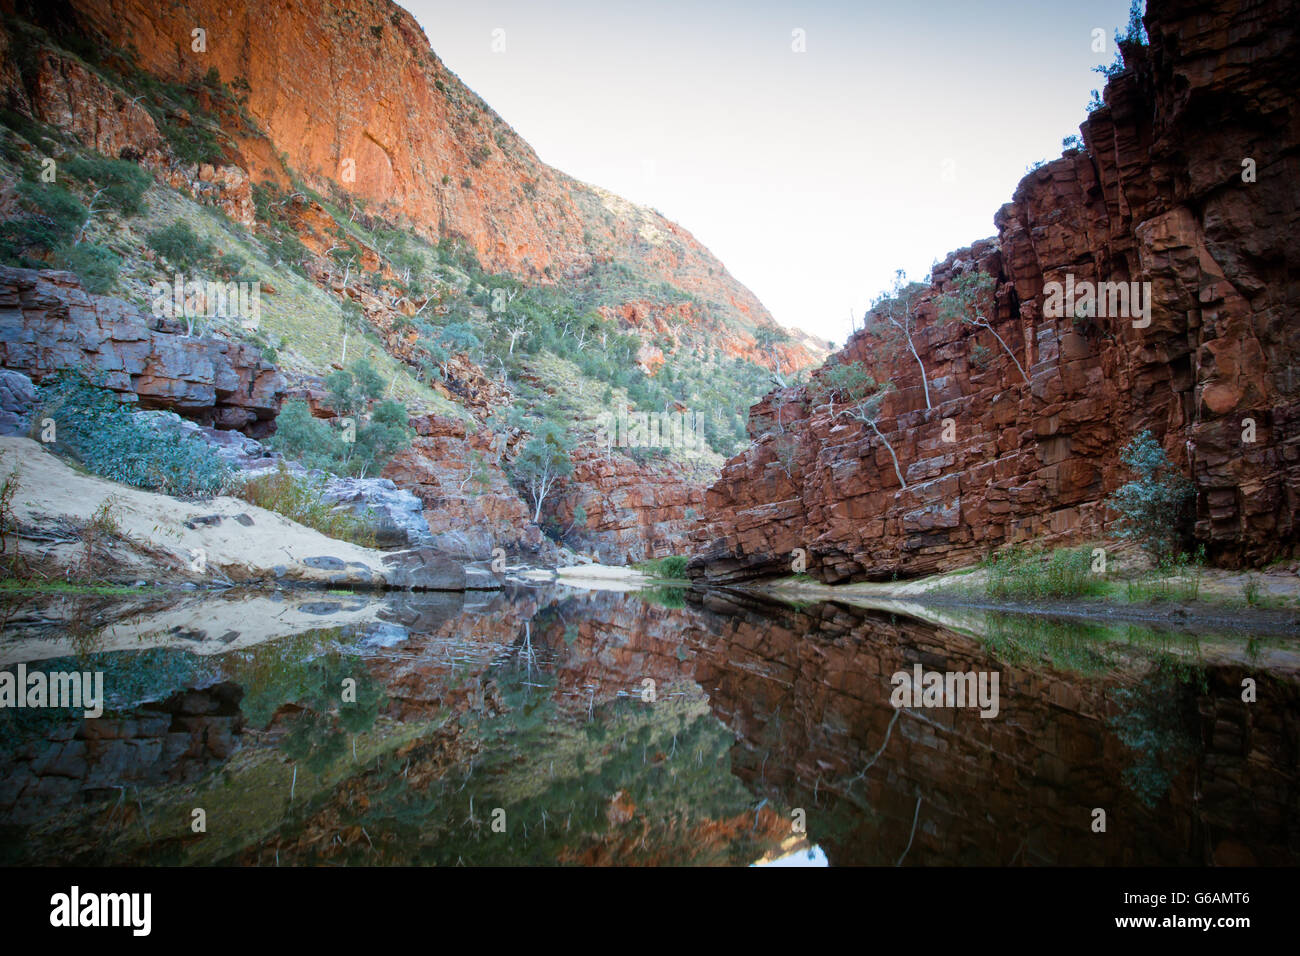 The impressive views of Ormiston Gorge in the West MacDonnell Ranges in Northern Territory, Australia - Stock Image